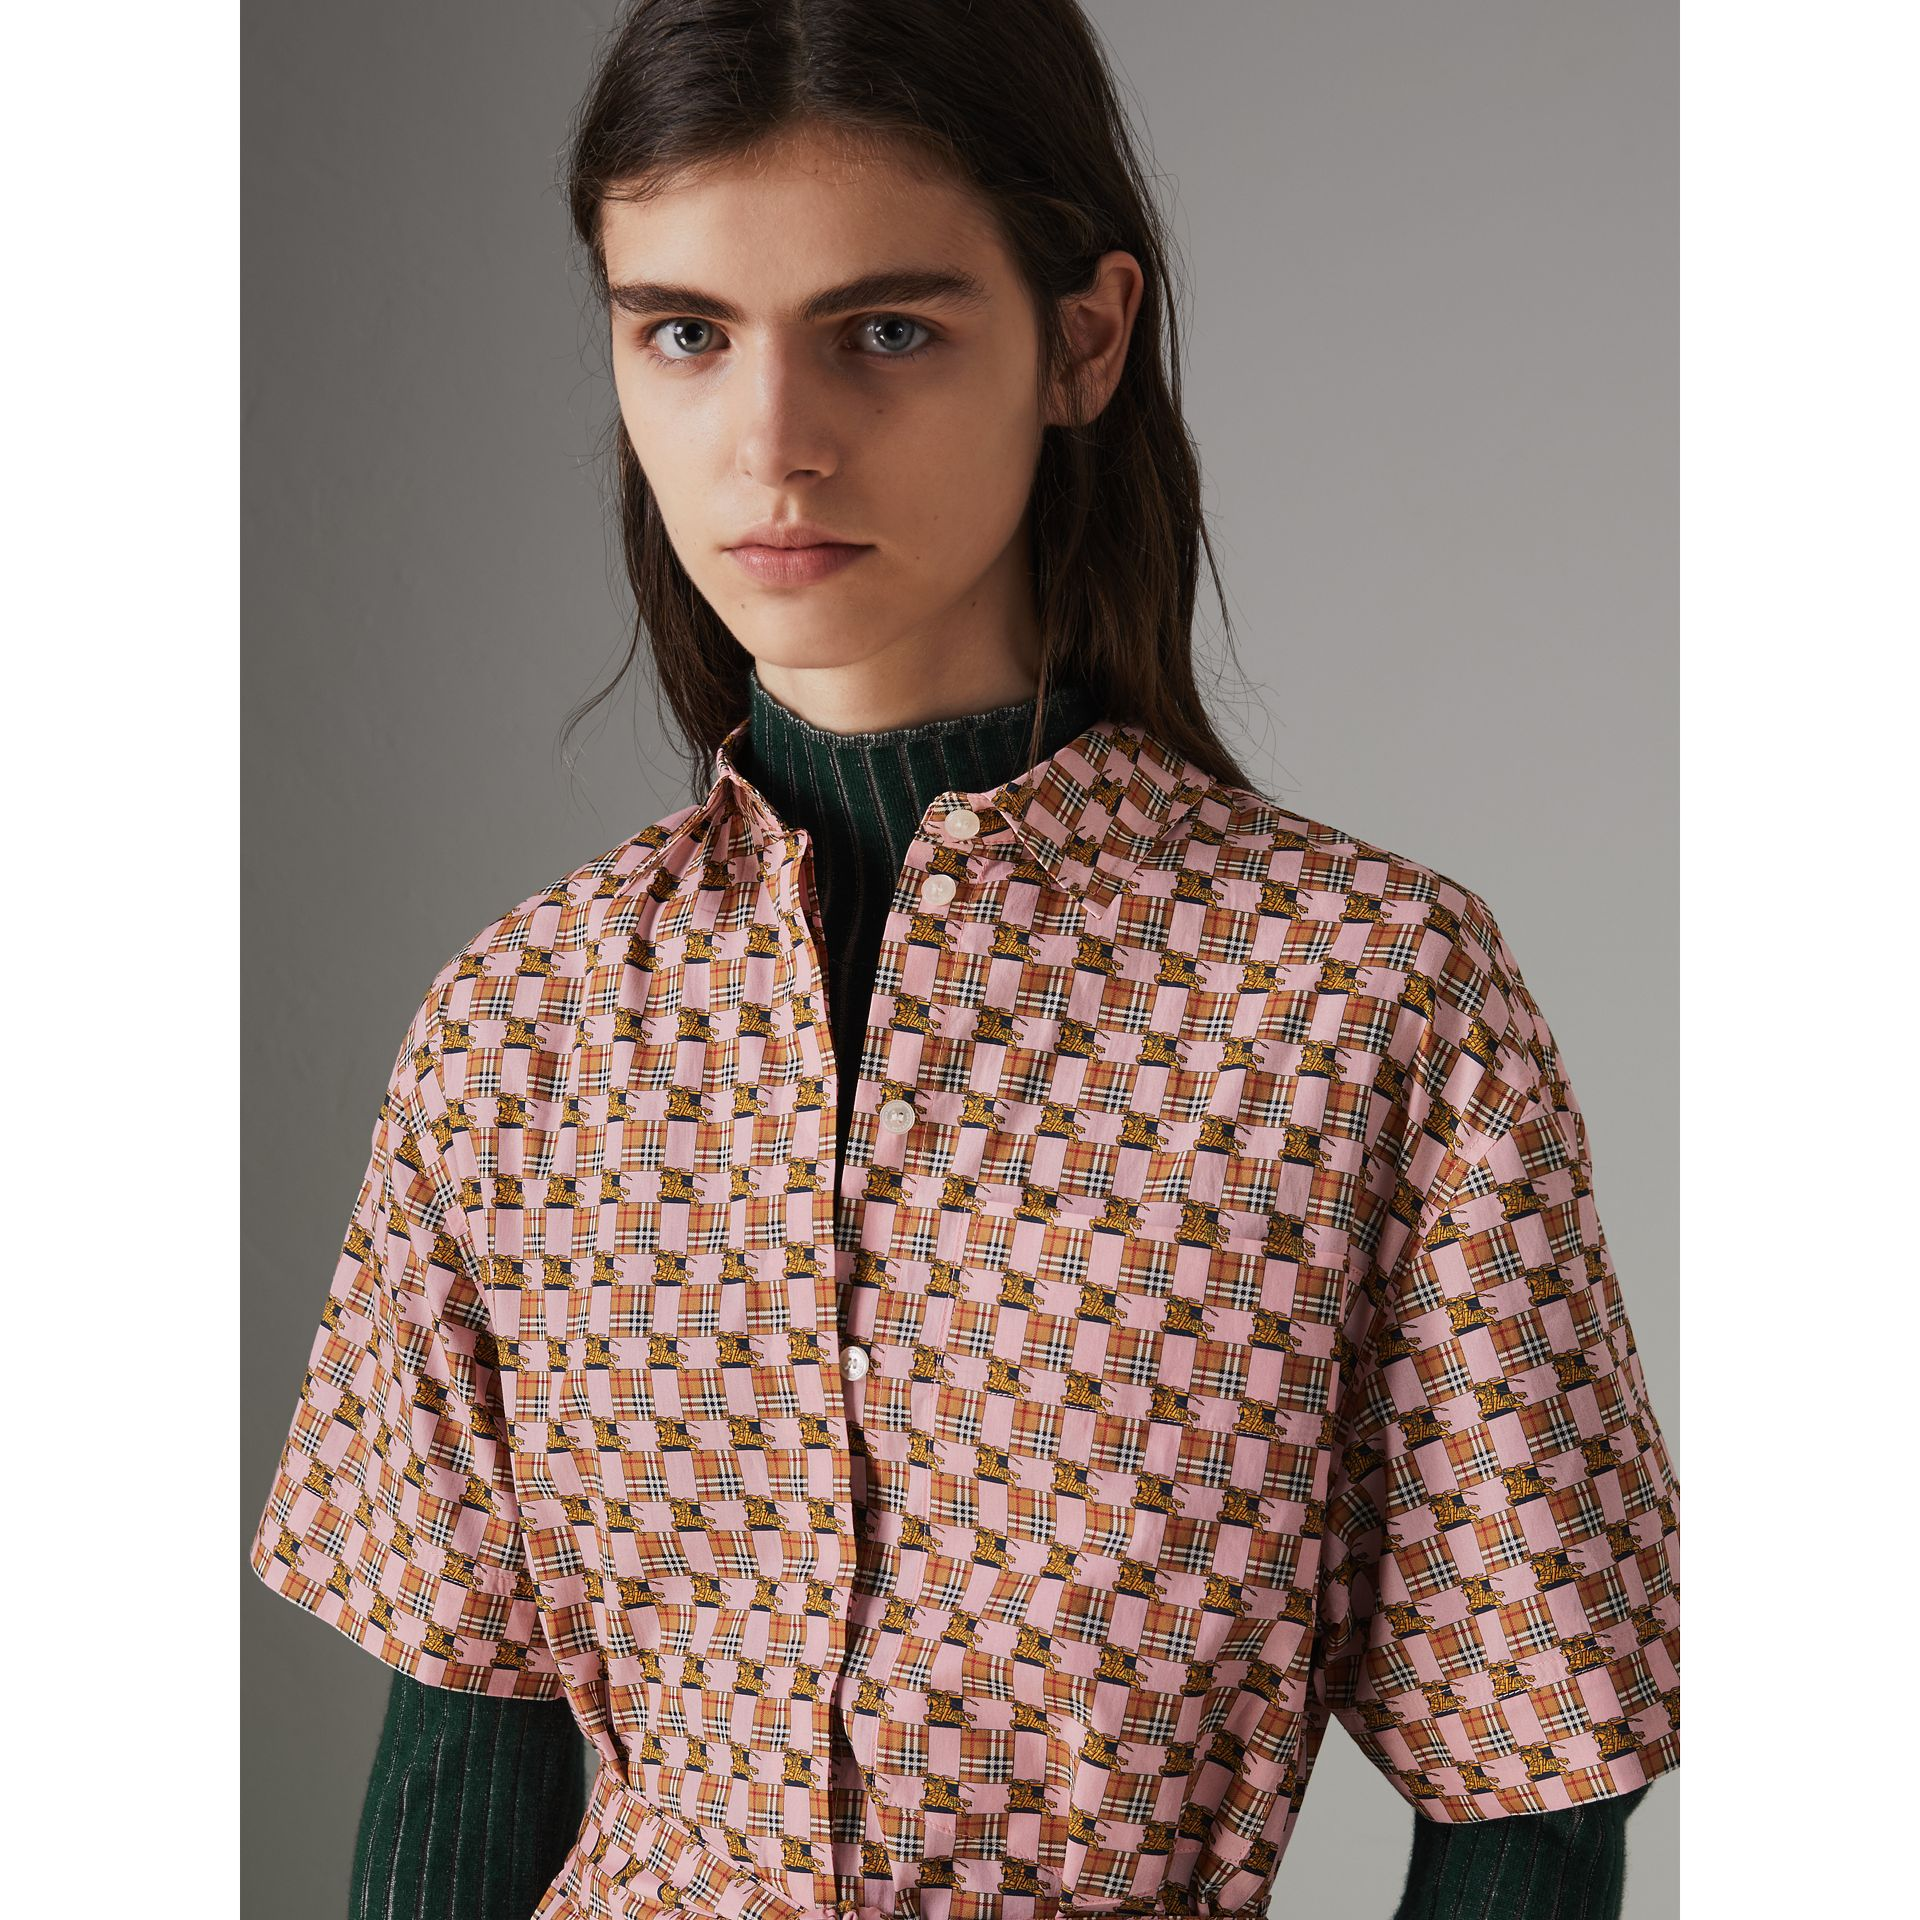 Tiled Archive Print Cotton Shirt Dress in Pink - Women | Burberry United Kingdom - gallery image 1